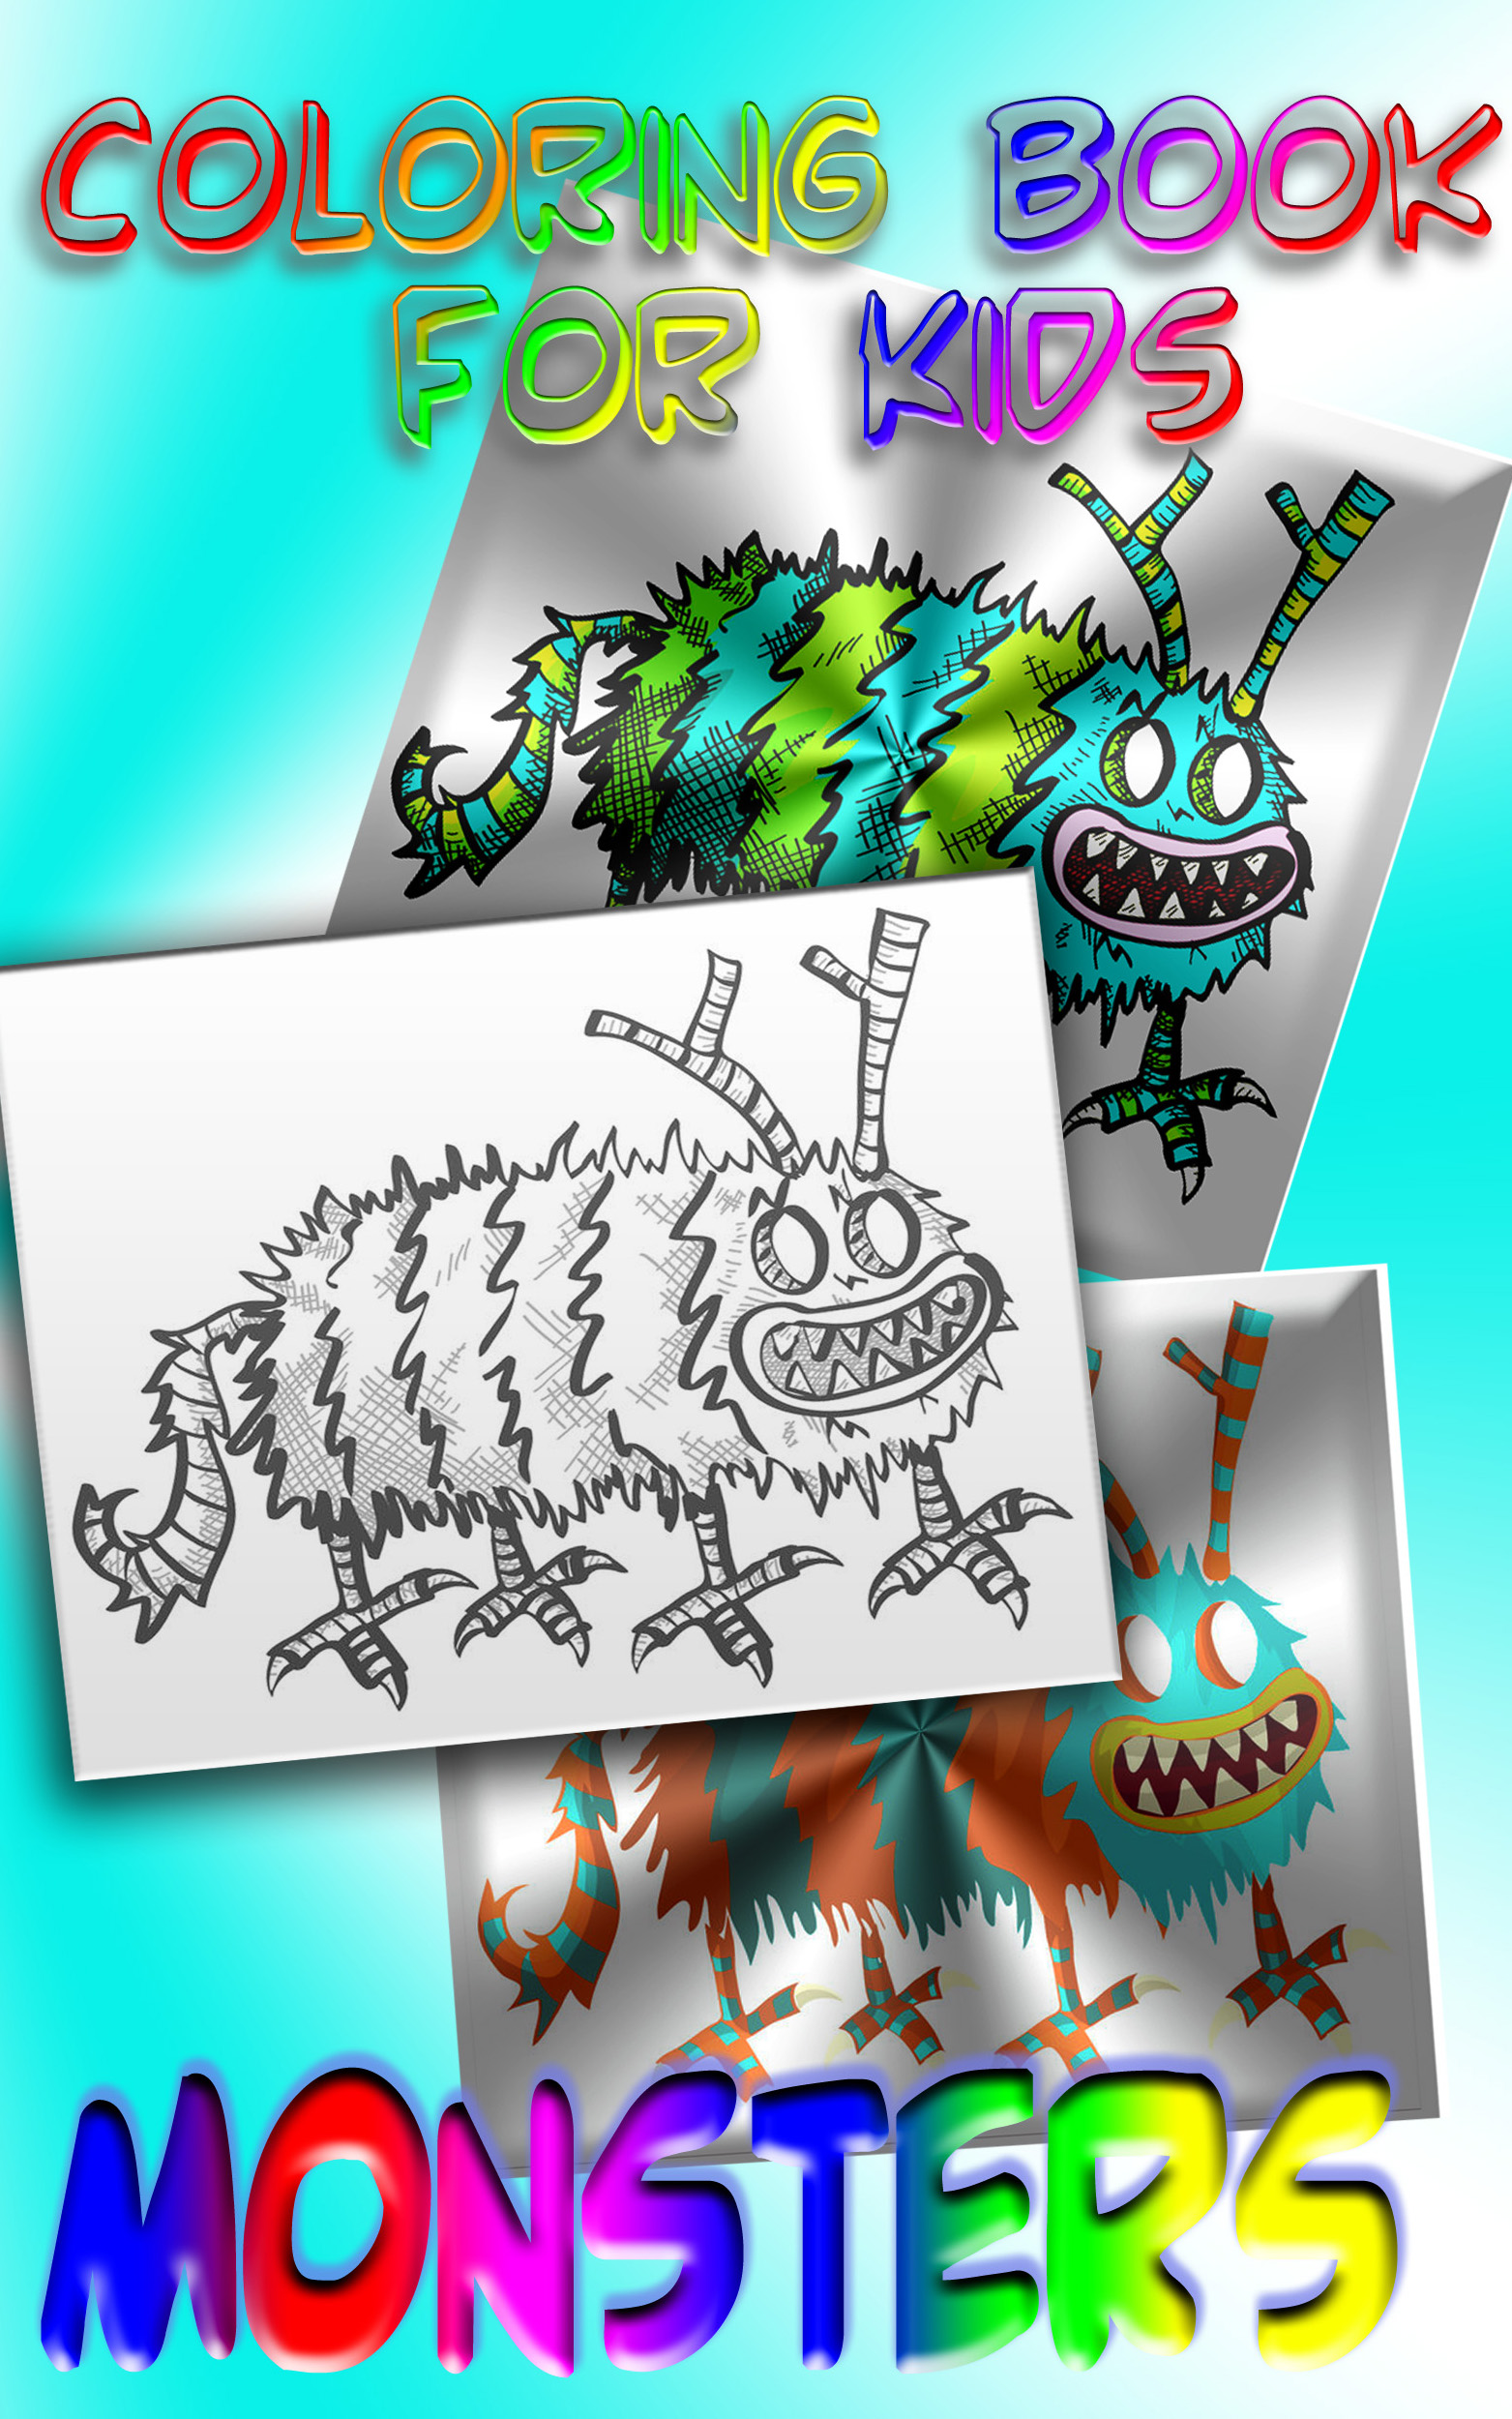 MONSTERS: Coloring Book for Kids - photo#38